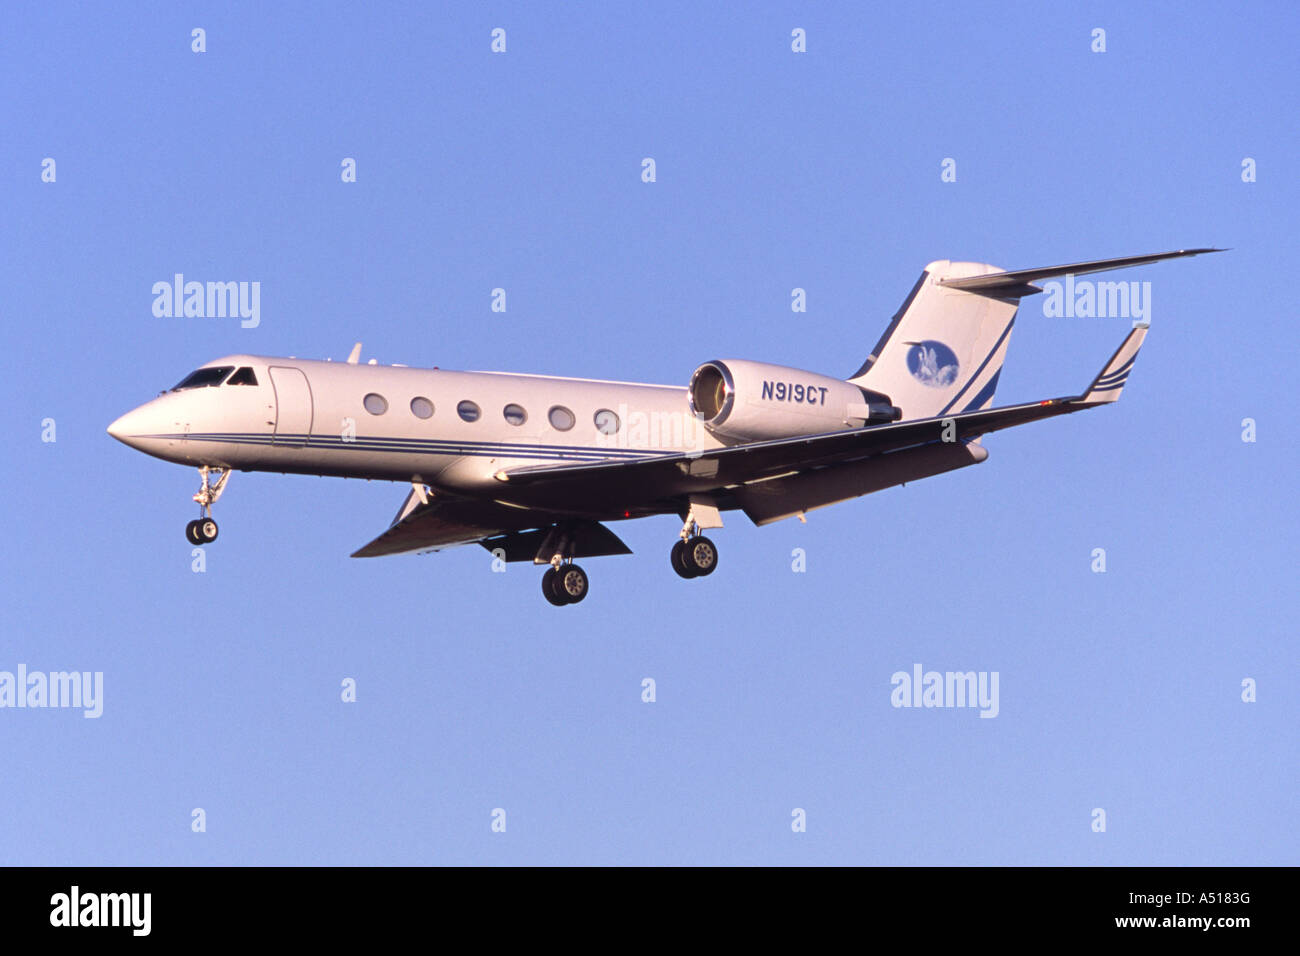 Gulfstream G-IV private jet laning at Luton Airport, UK - Stock Image